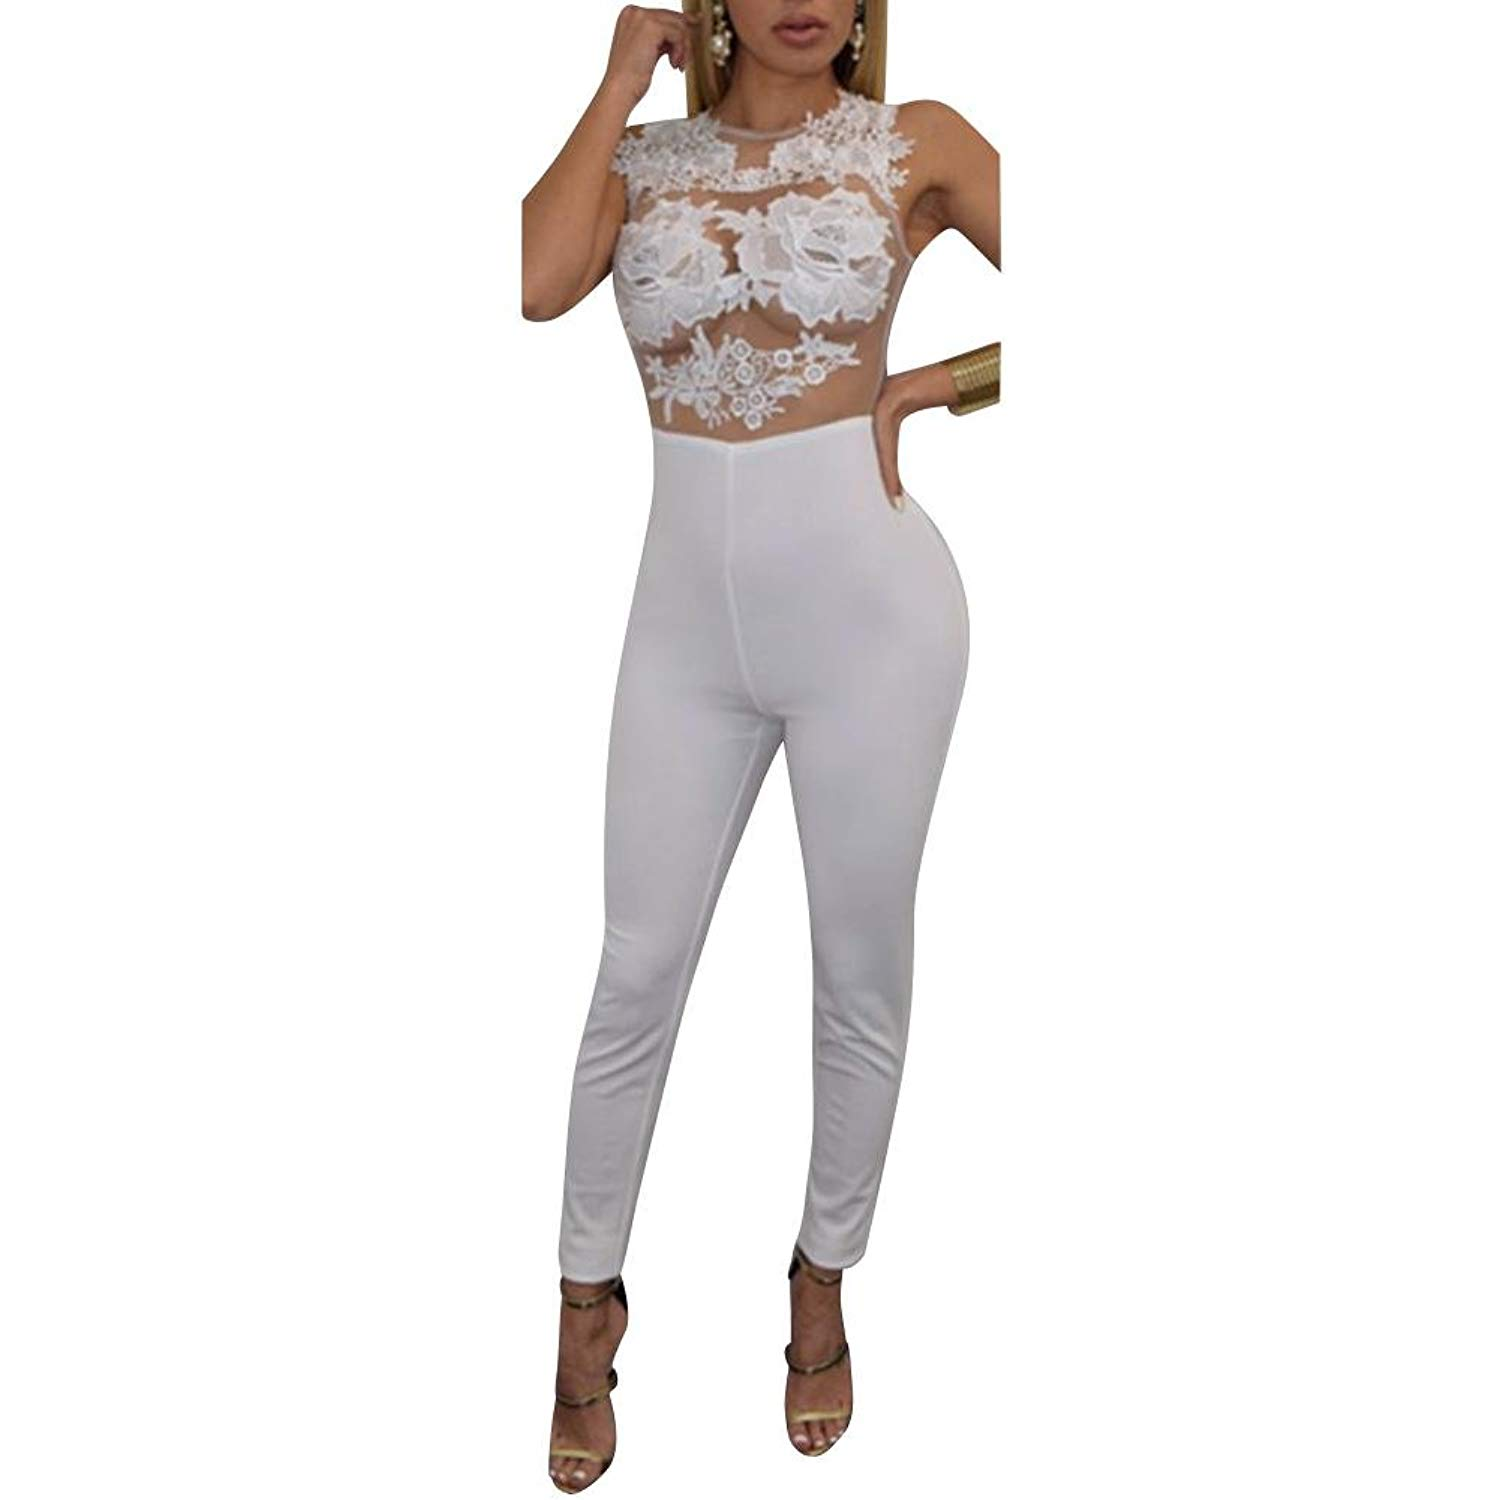 e8eae12977a4 Get Quotations · Diamondo Womens Lace Bandage Bodycon Jumpsuit Romper  Trousers Clubwear XL White